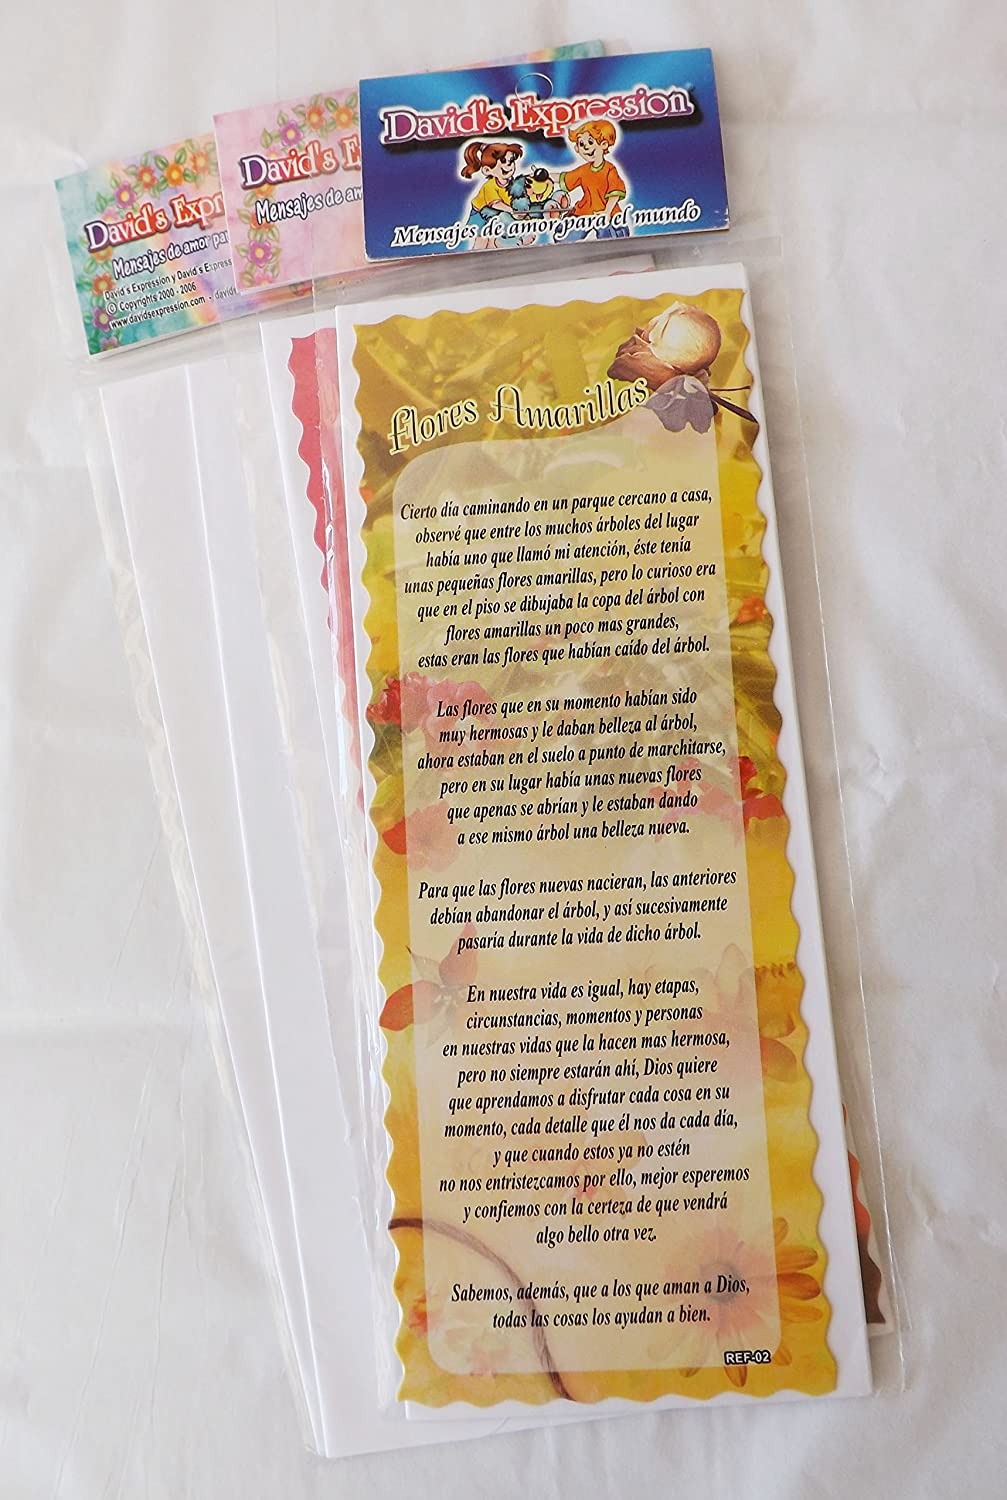 Amazon.com : Vivencia separadores - historias donde inspiran nuestra alma-- 8 Pack (Spanish Edition) bookmark : Office Products